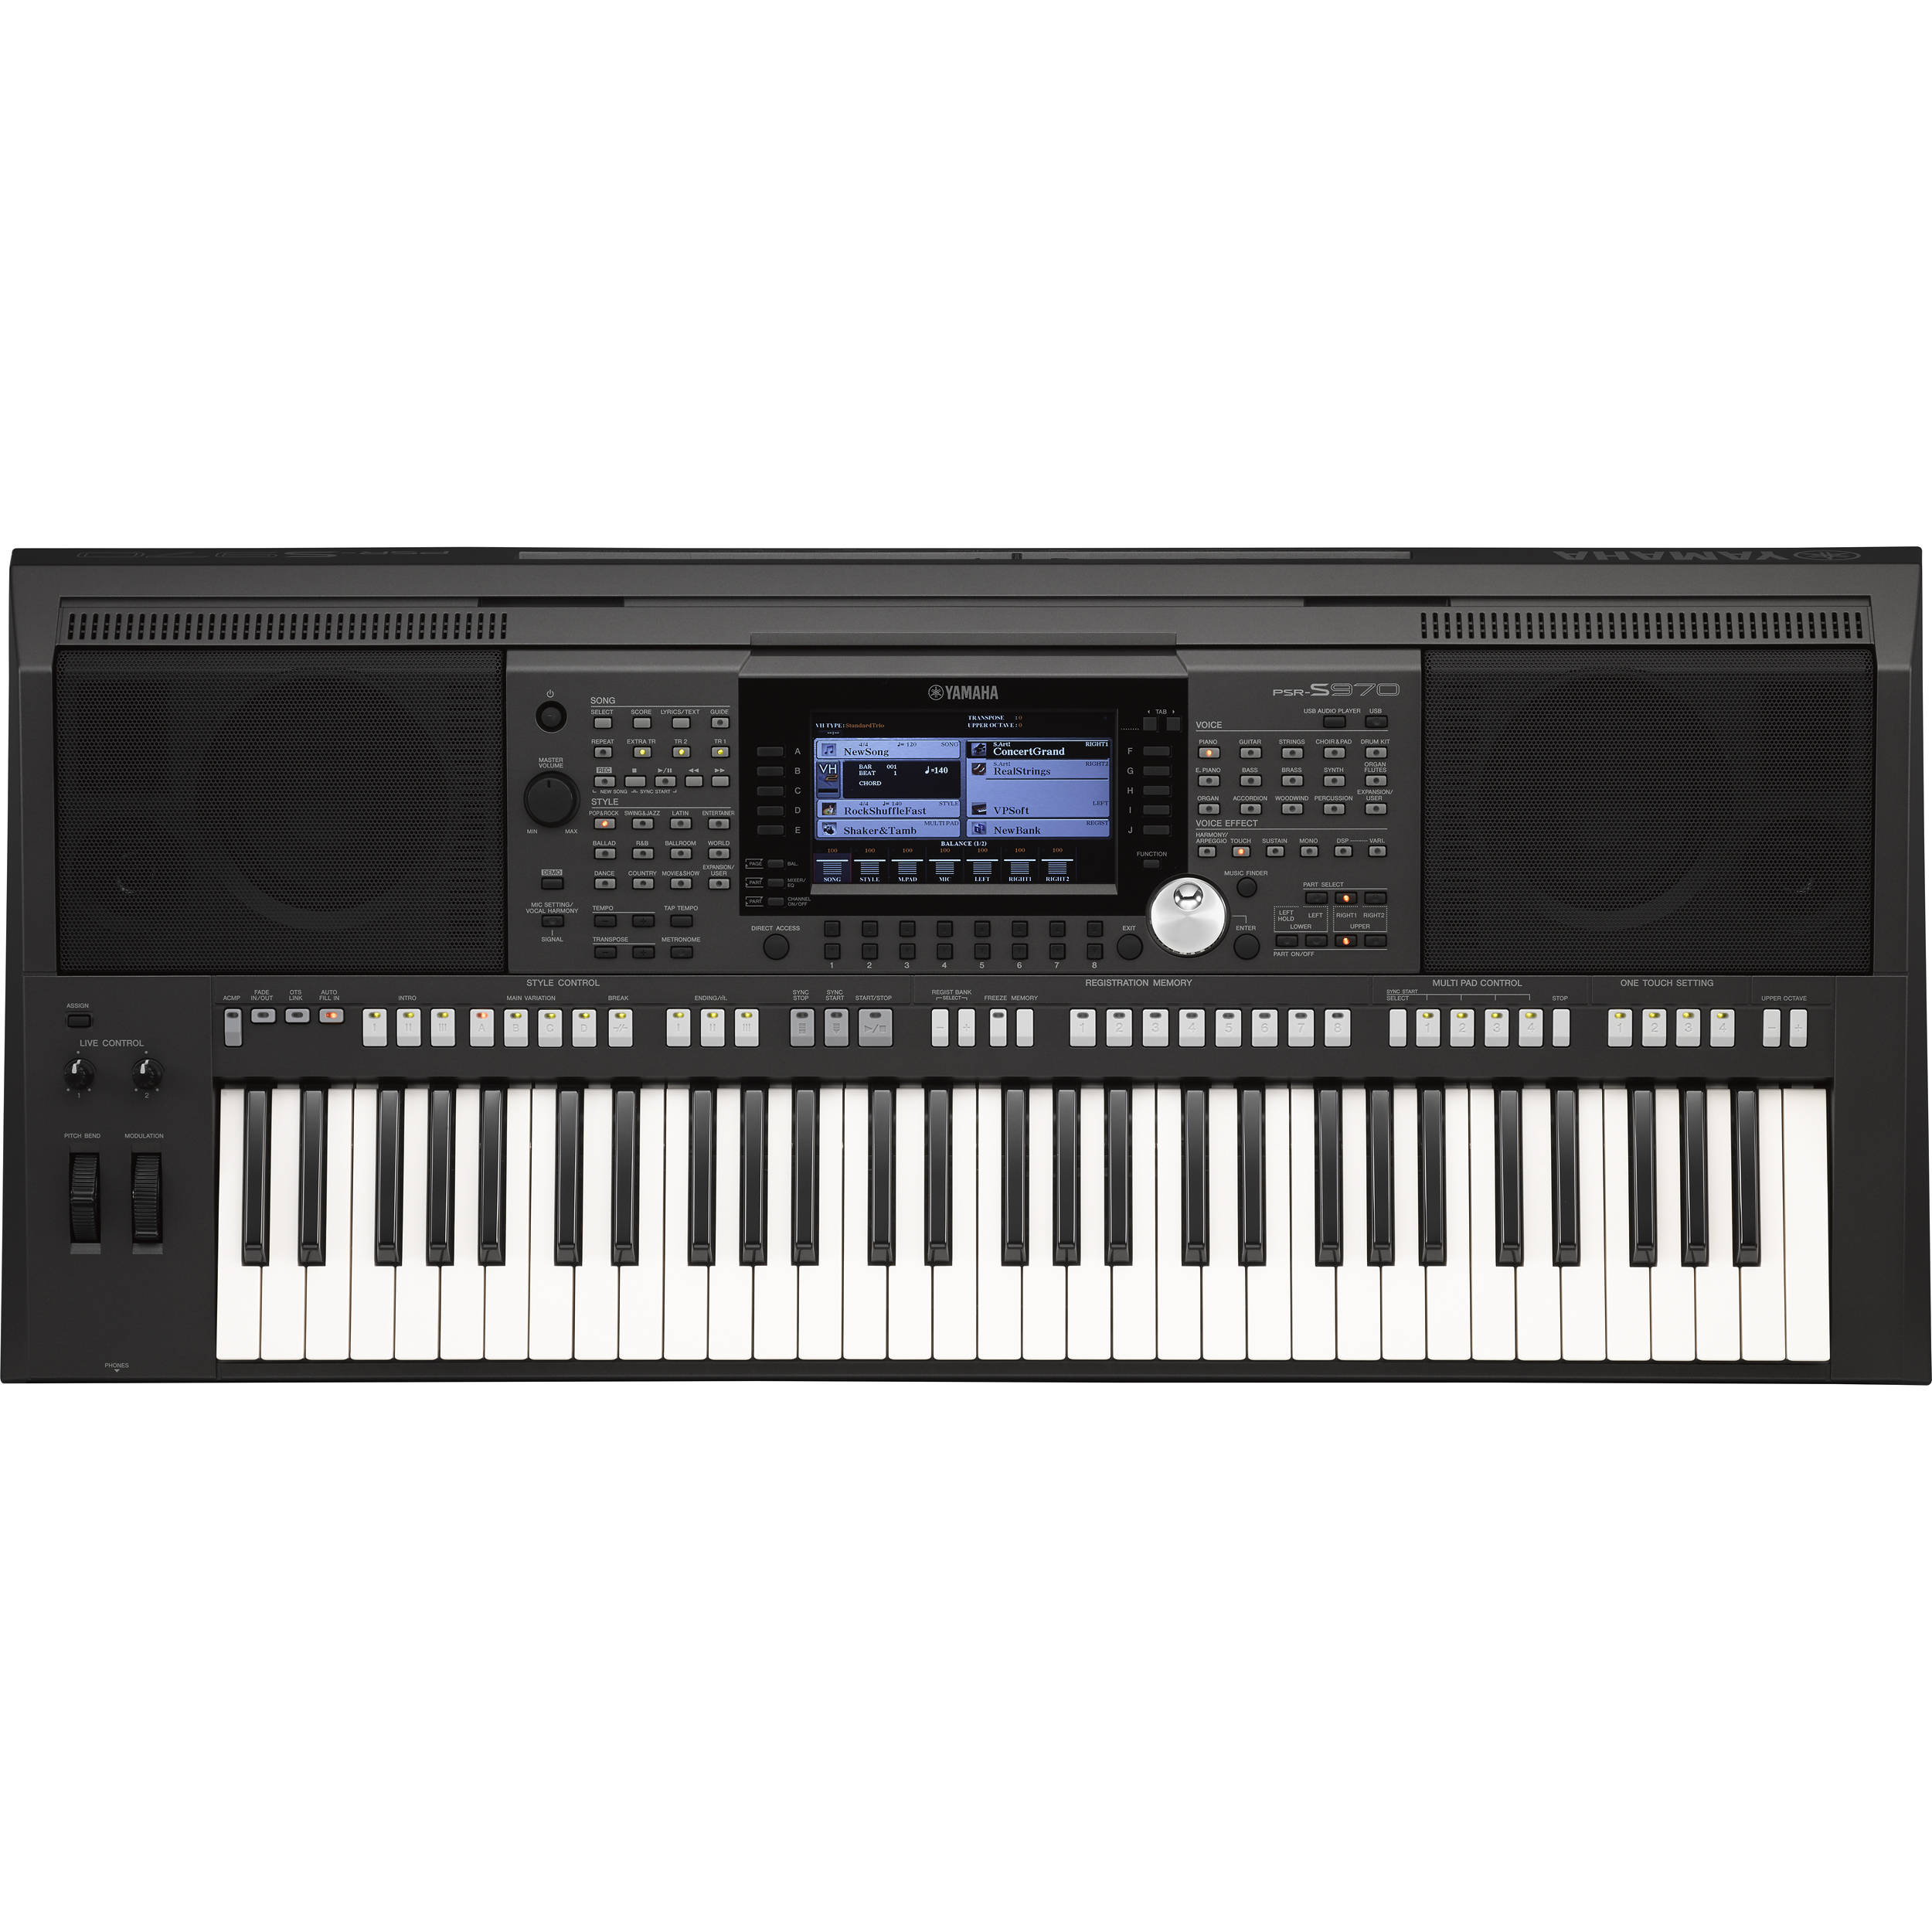 Yamaha psr s970 arranger workstation psrs970 b h photo video for Yamaha audio customer service